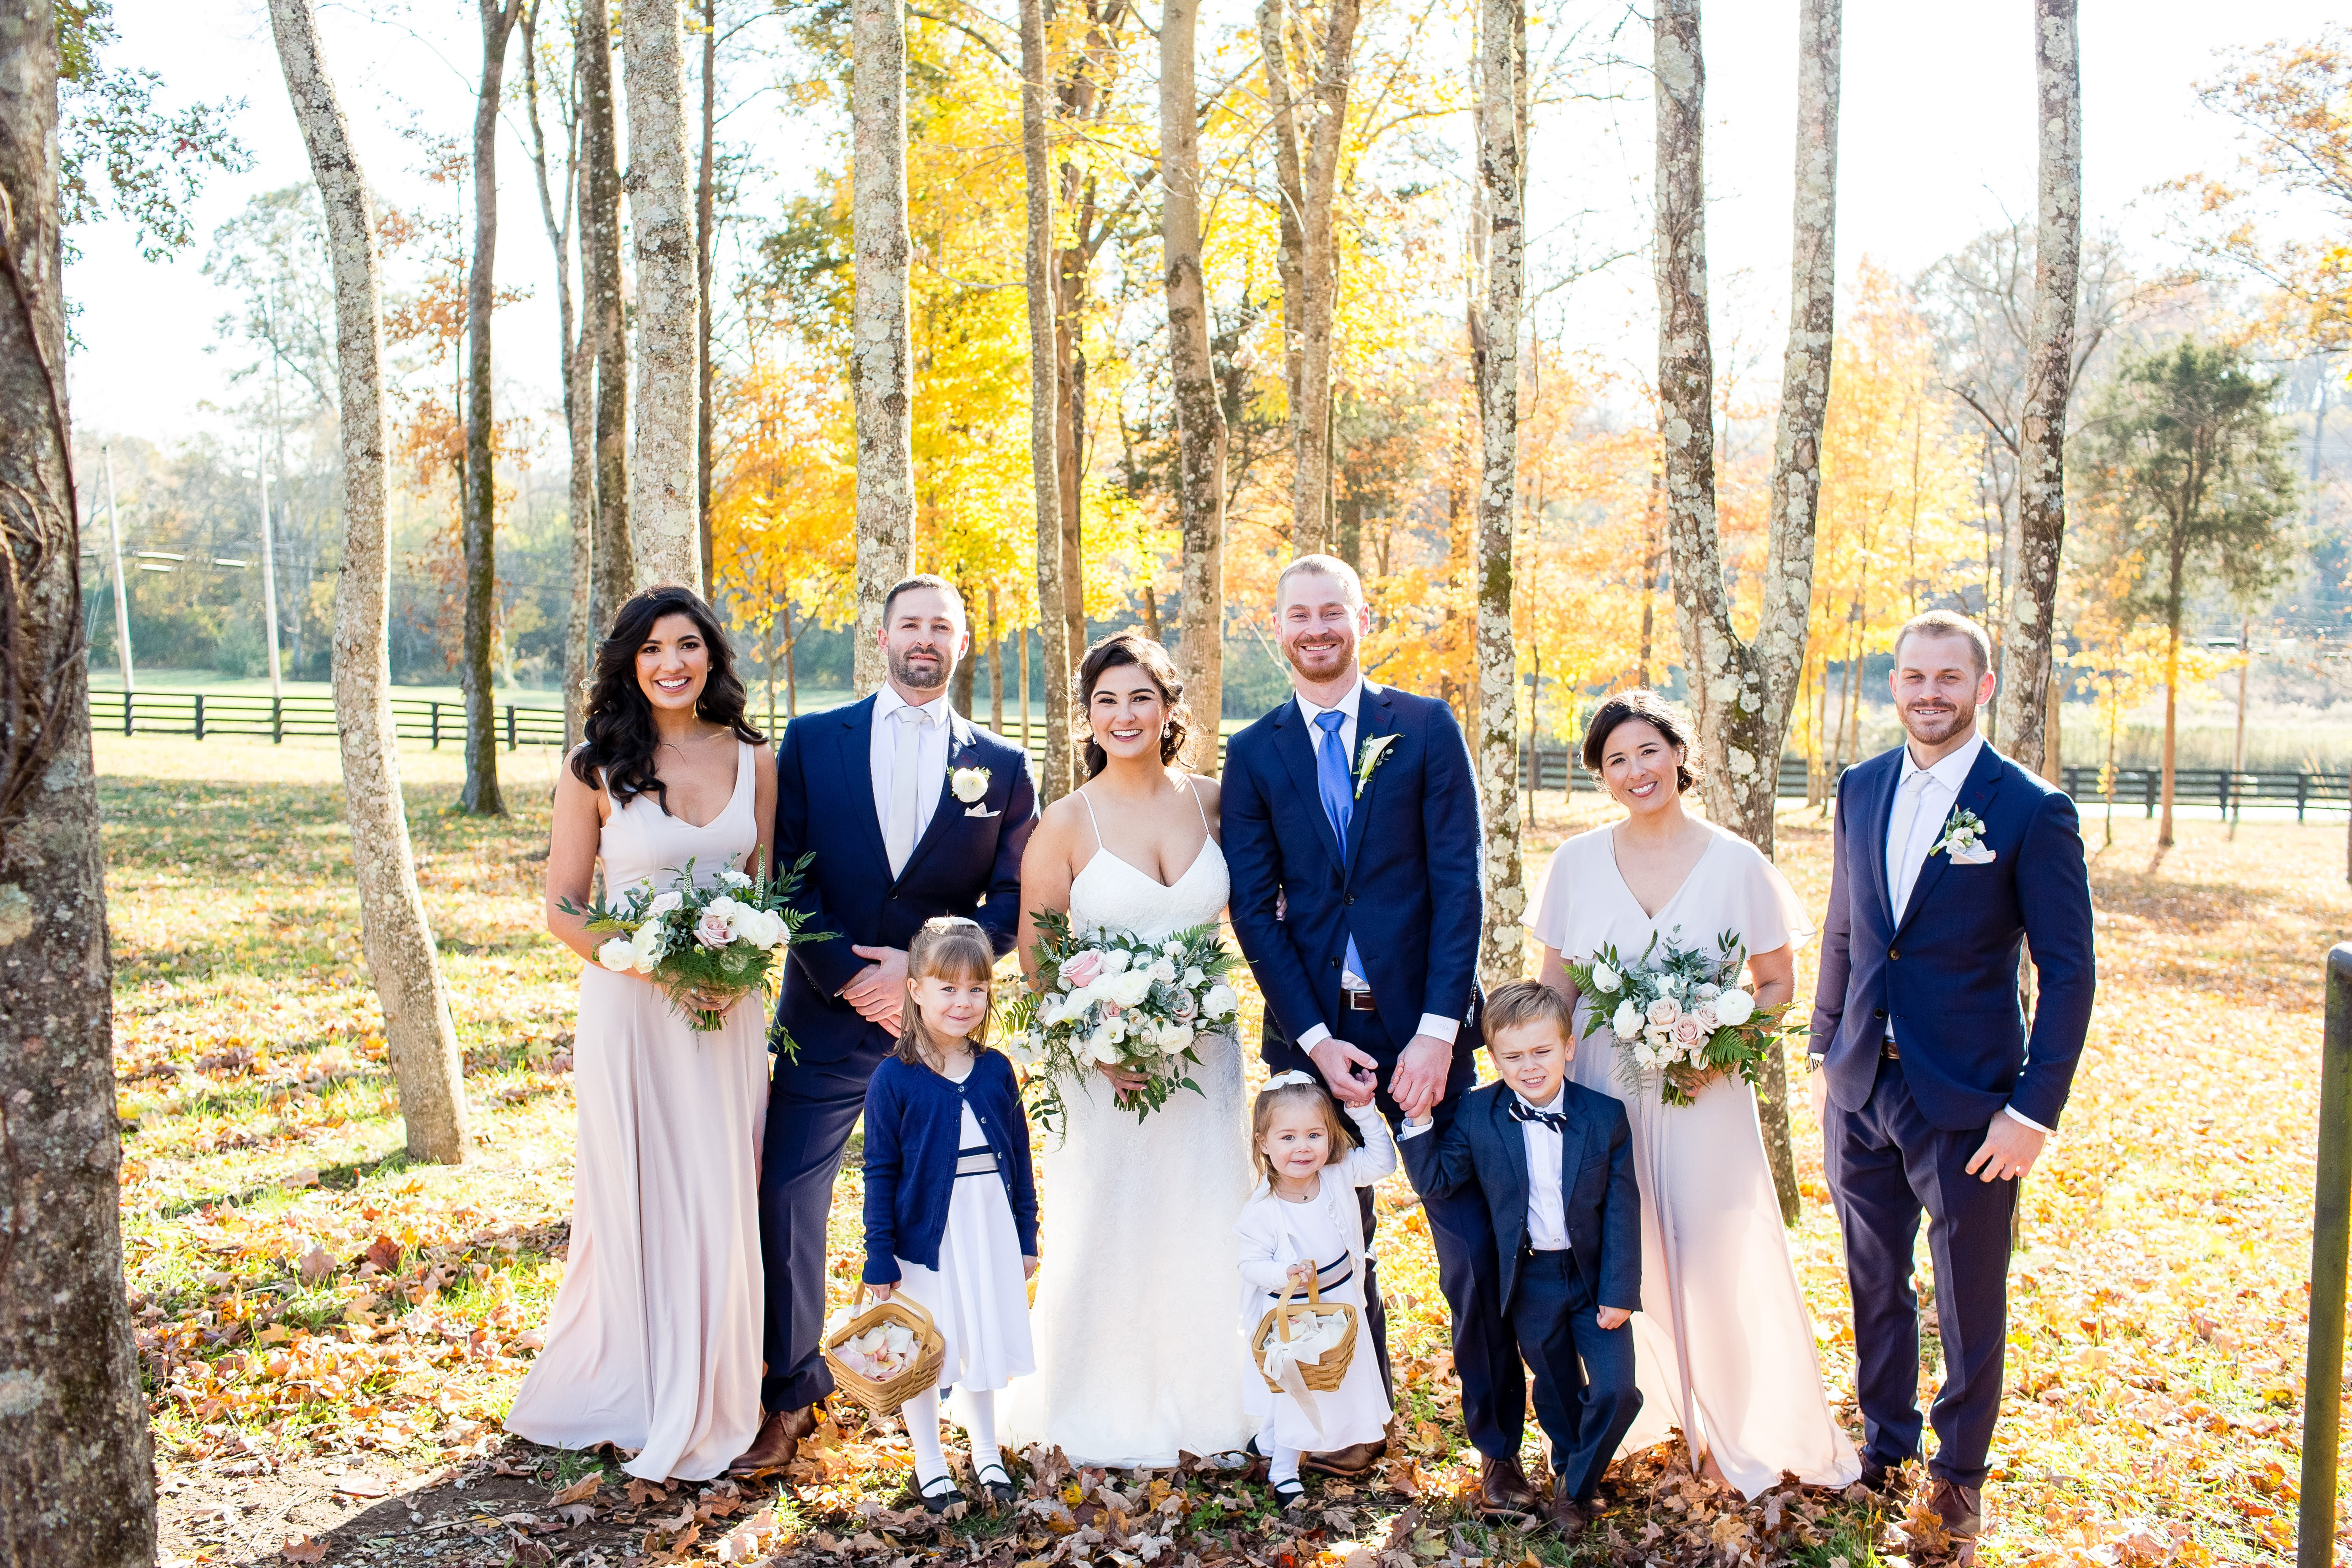 Nashville bridal party | LeeHenry Events